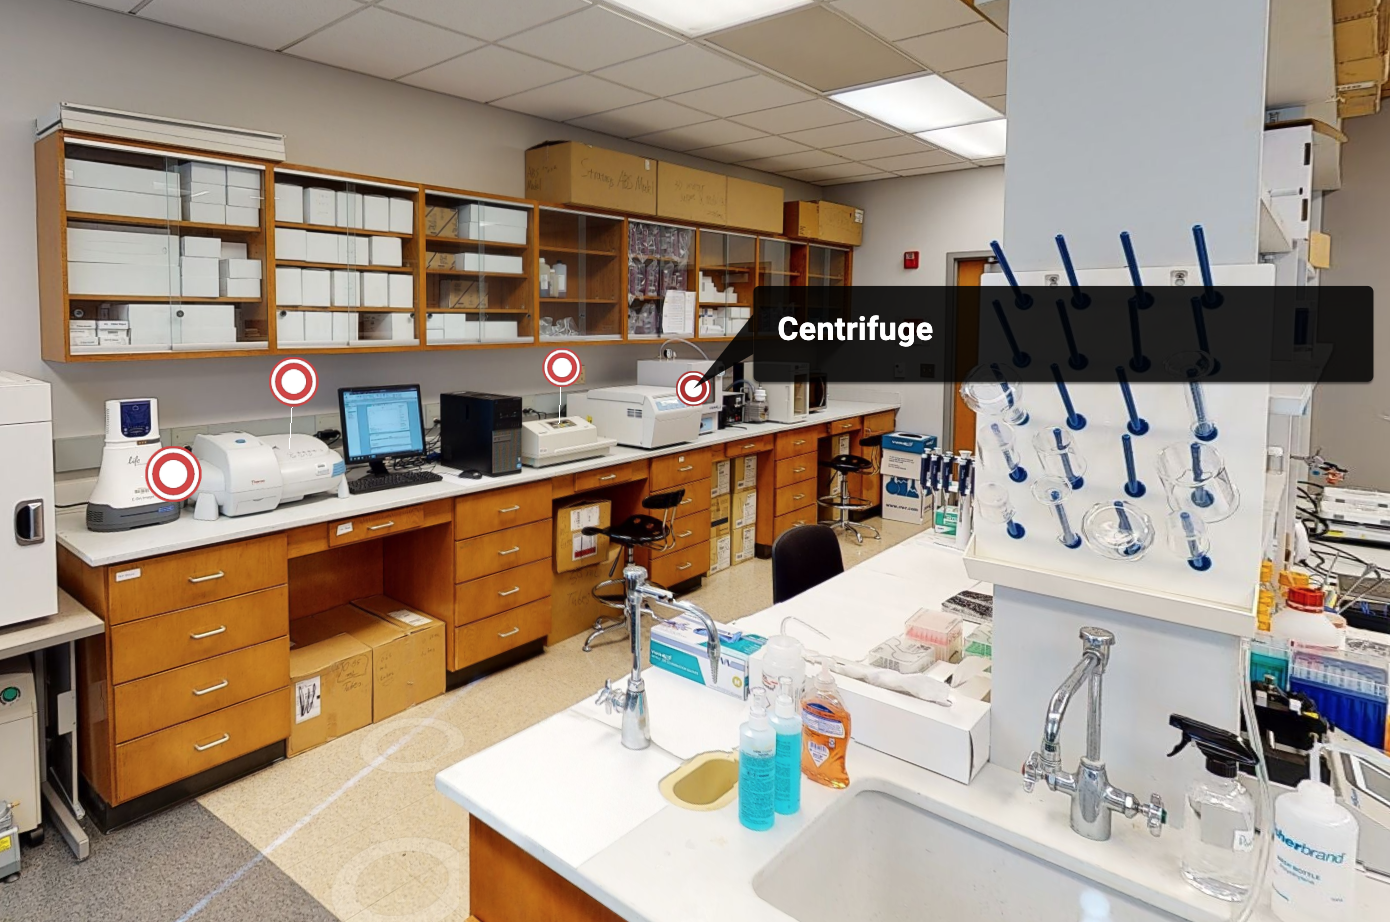 Screenshot of the Matterport tour featuring a labeled centrifuge.